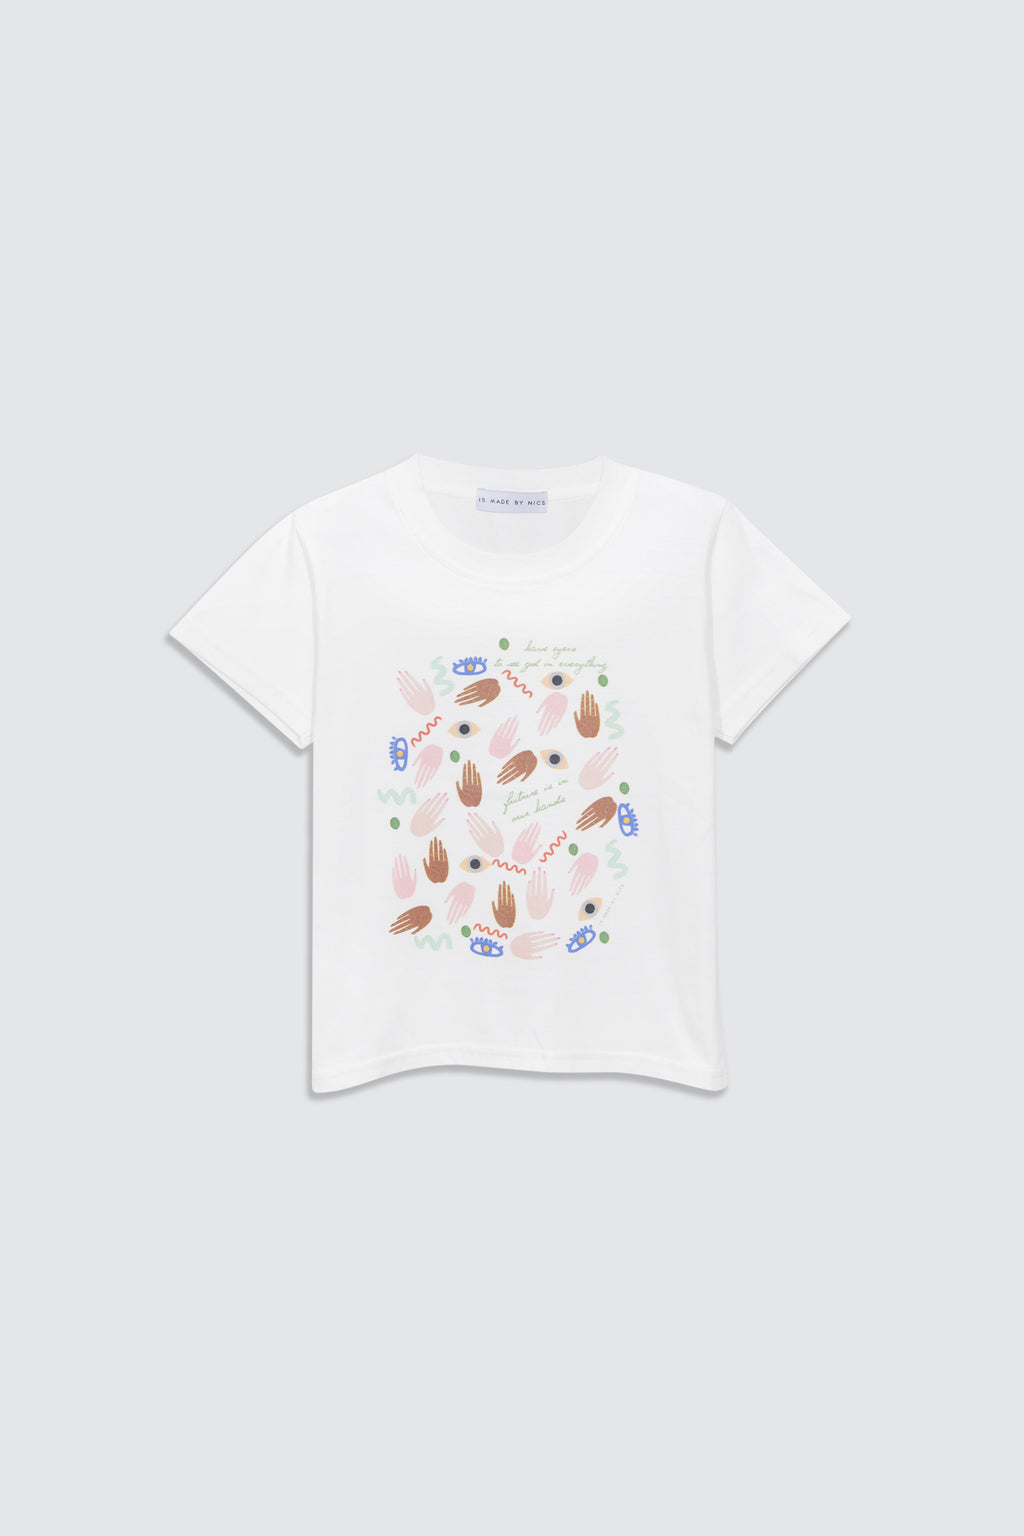 [Made By Nics] MBN- Hands T-Shirt [9M-9Y]